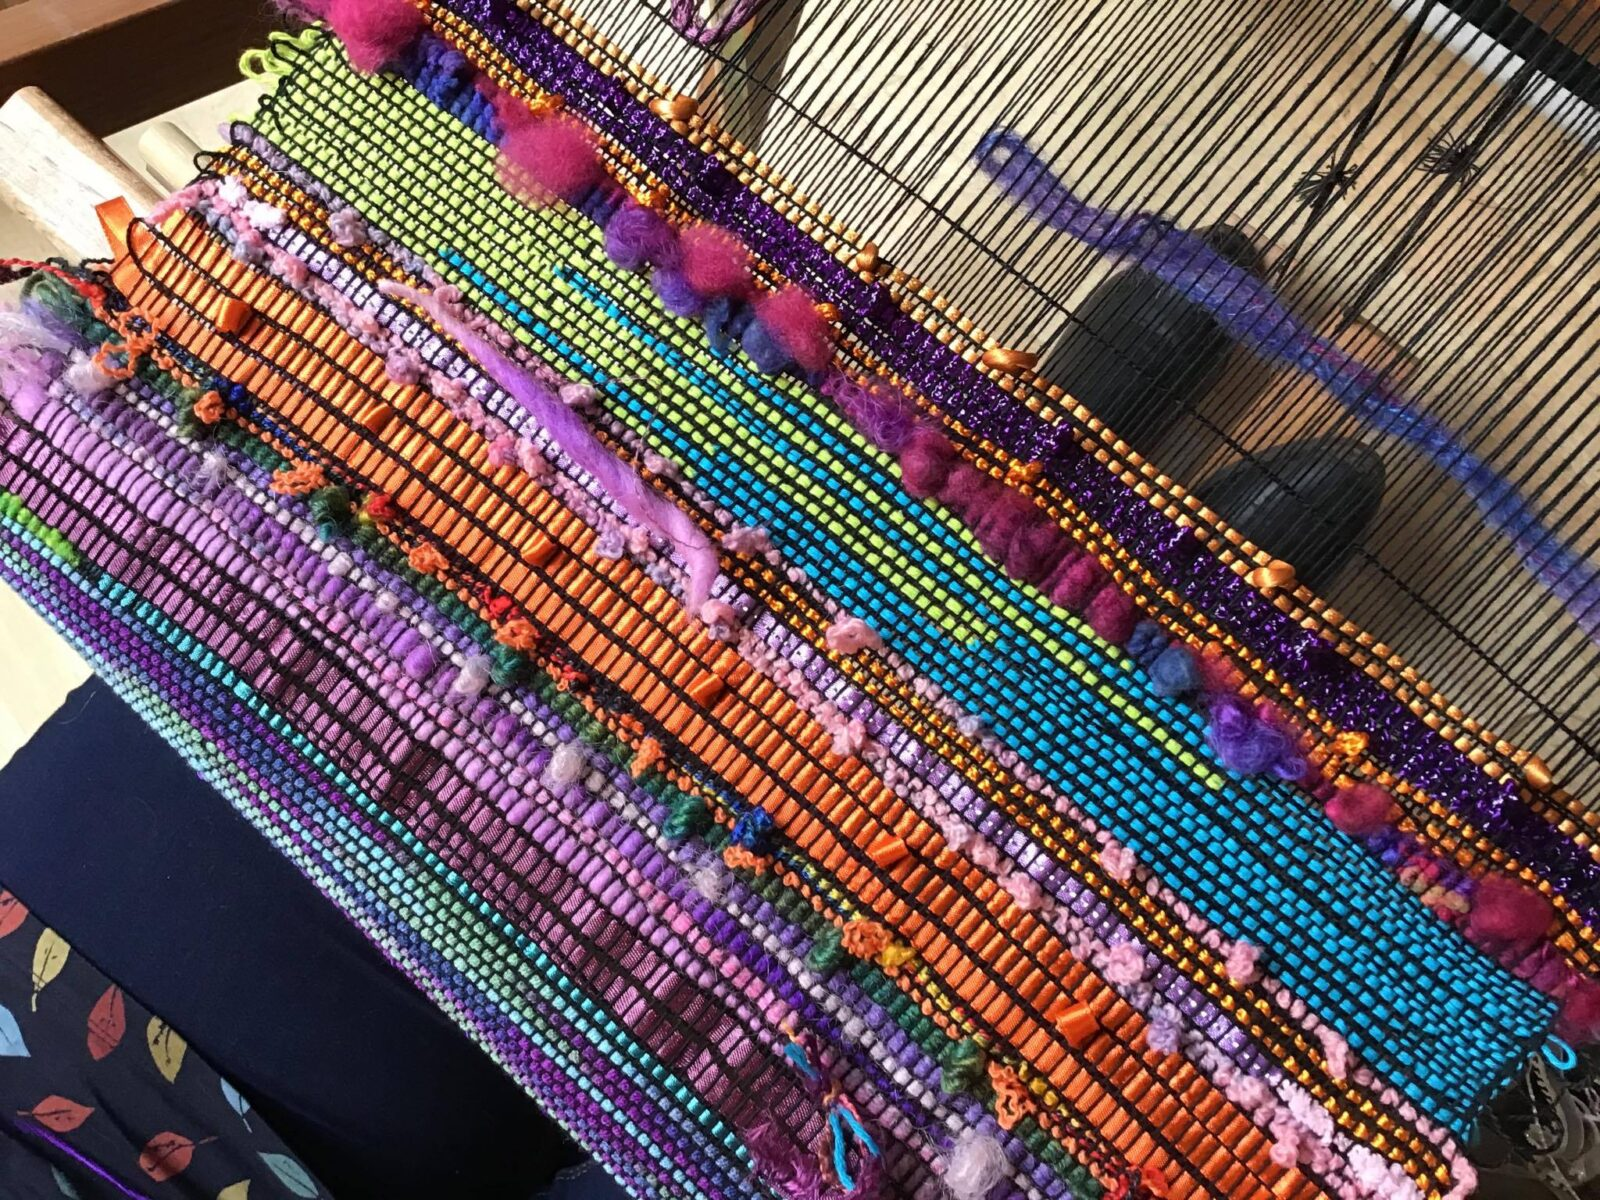 Striped multicoloured textured SAORI weaving on a loom